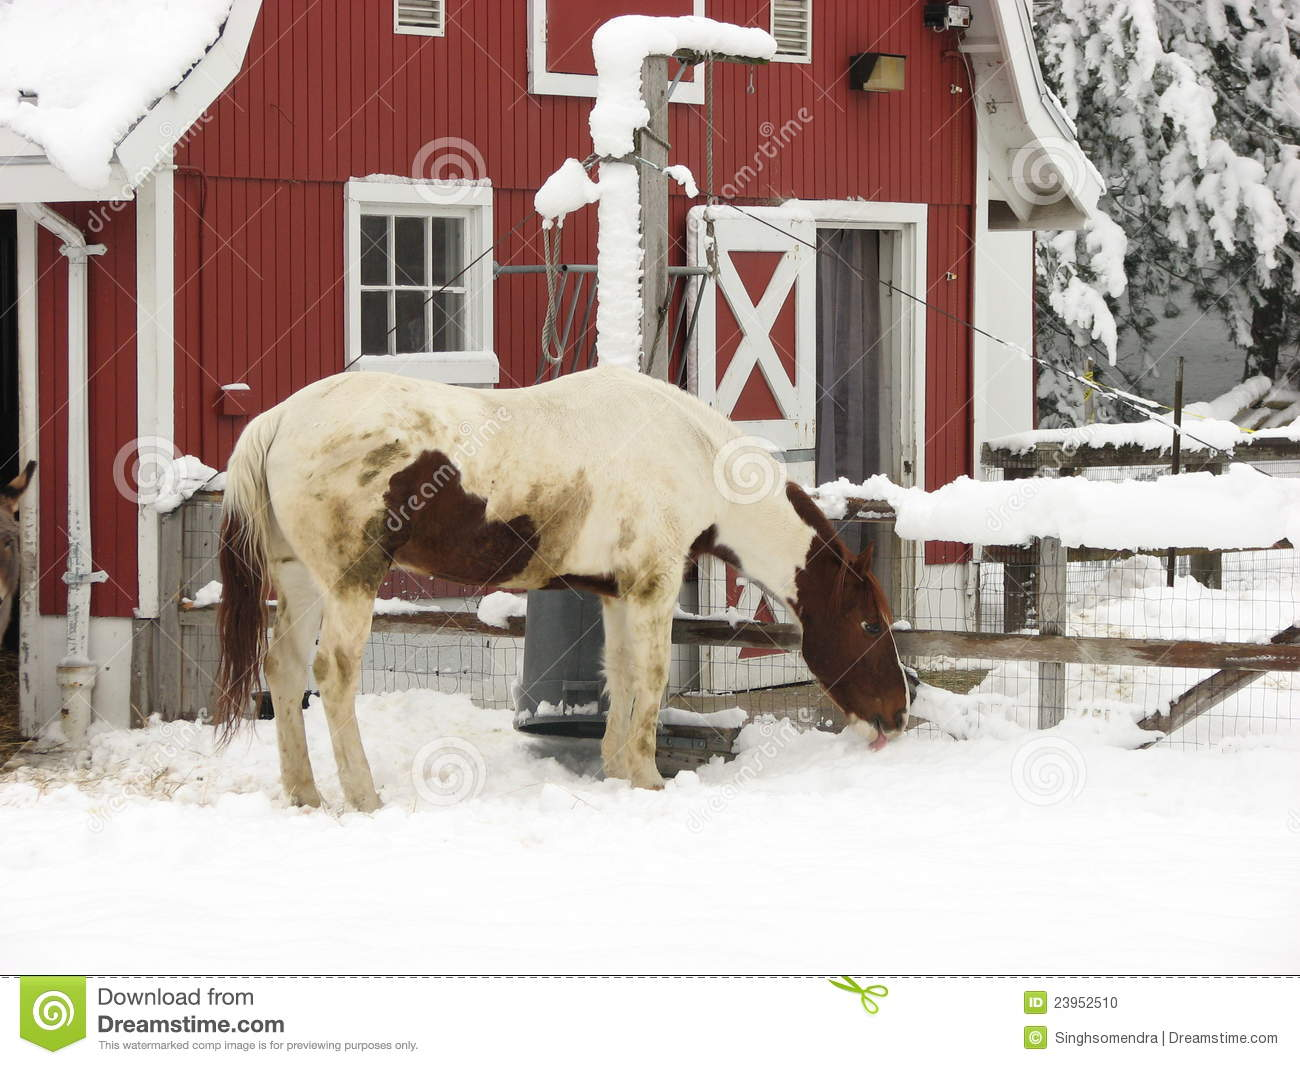 a horse at milwaukee zoo in winter season stock photo. Black Bedroom Furniture Sets. Home Design Ideas